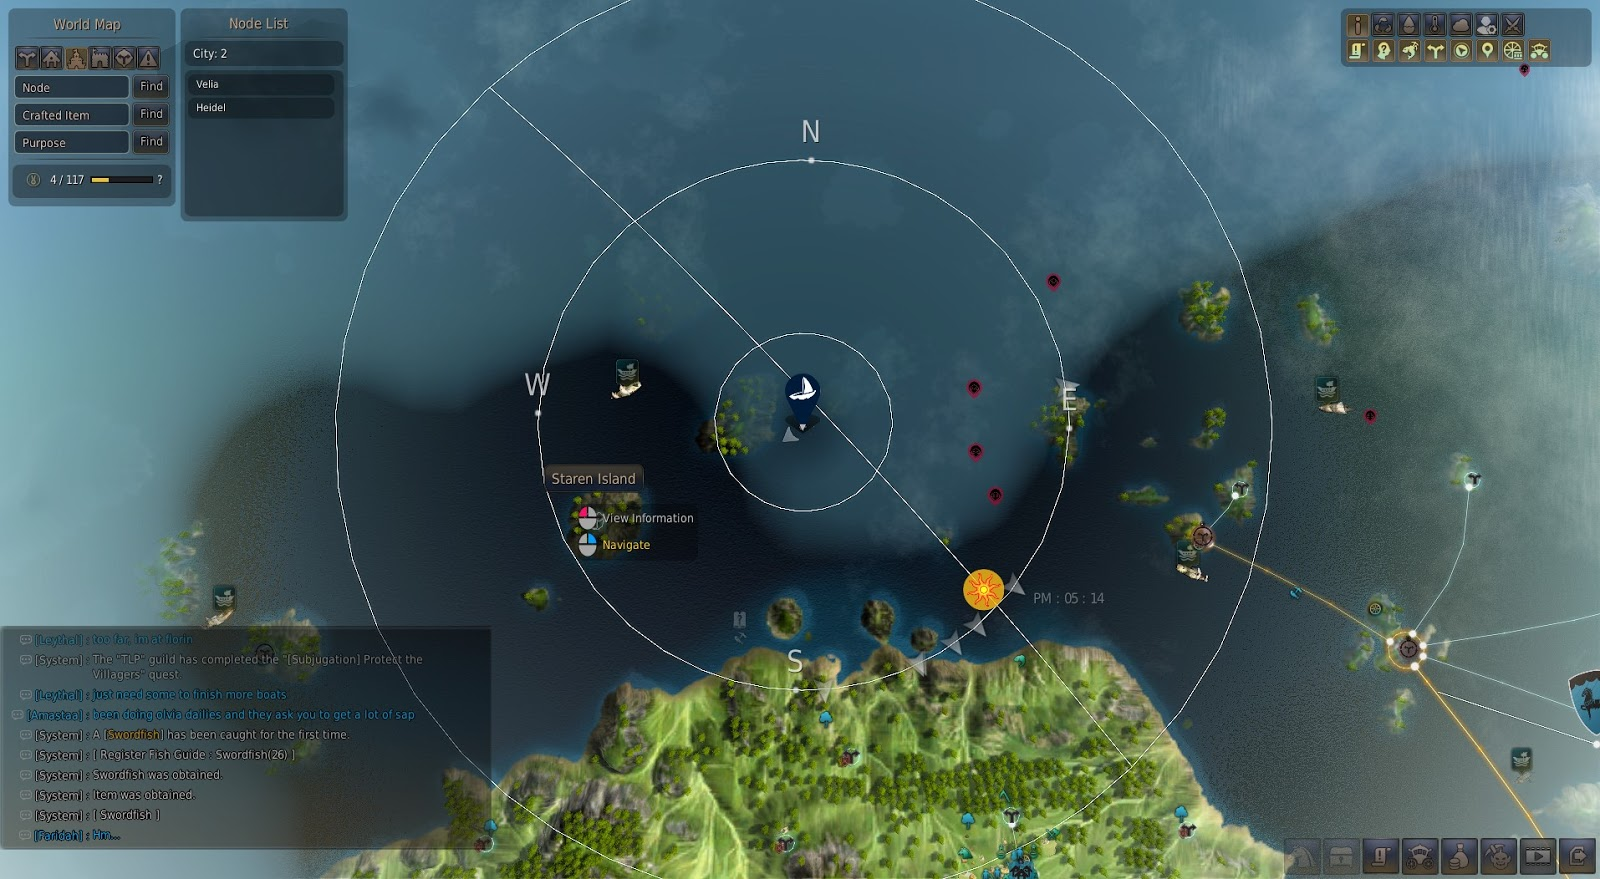 Black desert online crafting journal fishing guide hotspots the odd thing was that it is connected to oliva coast node not a island gumiabroncs Image collections